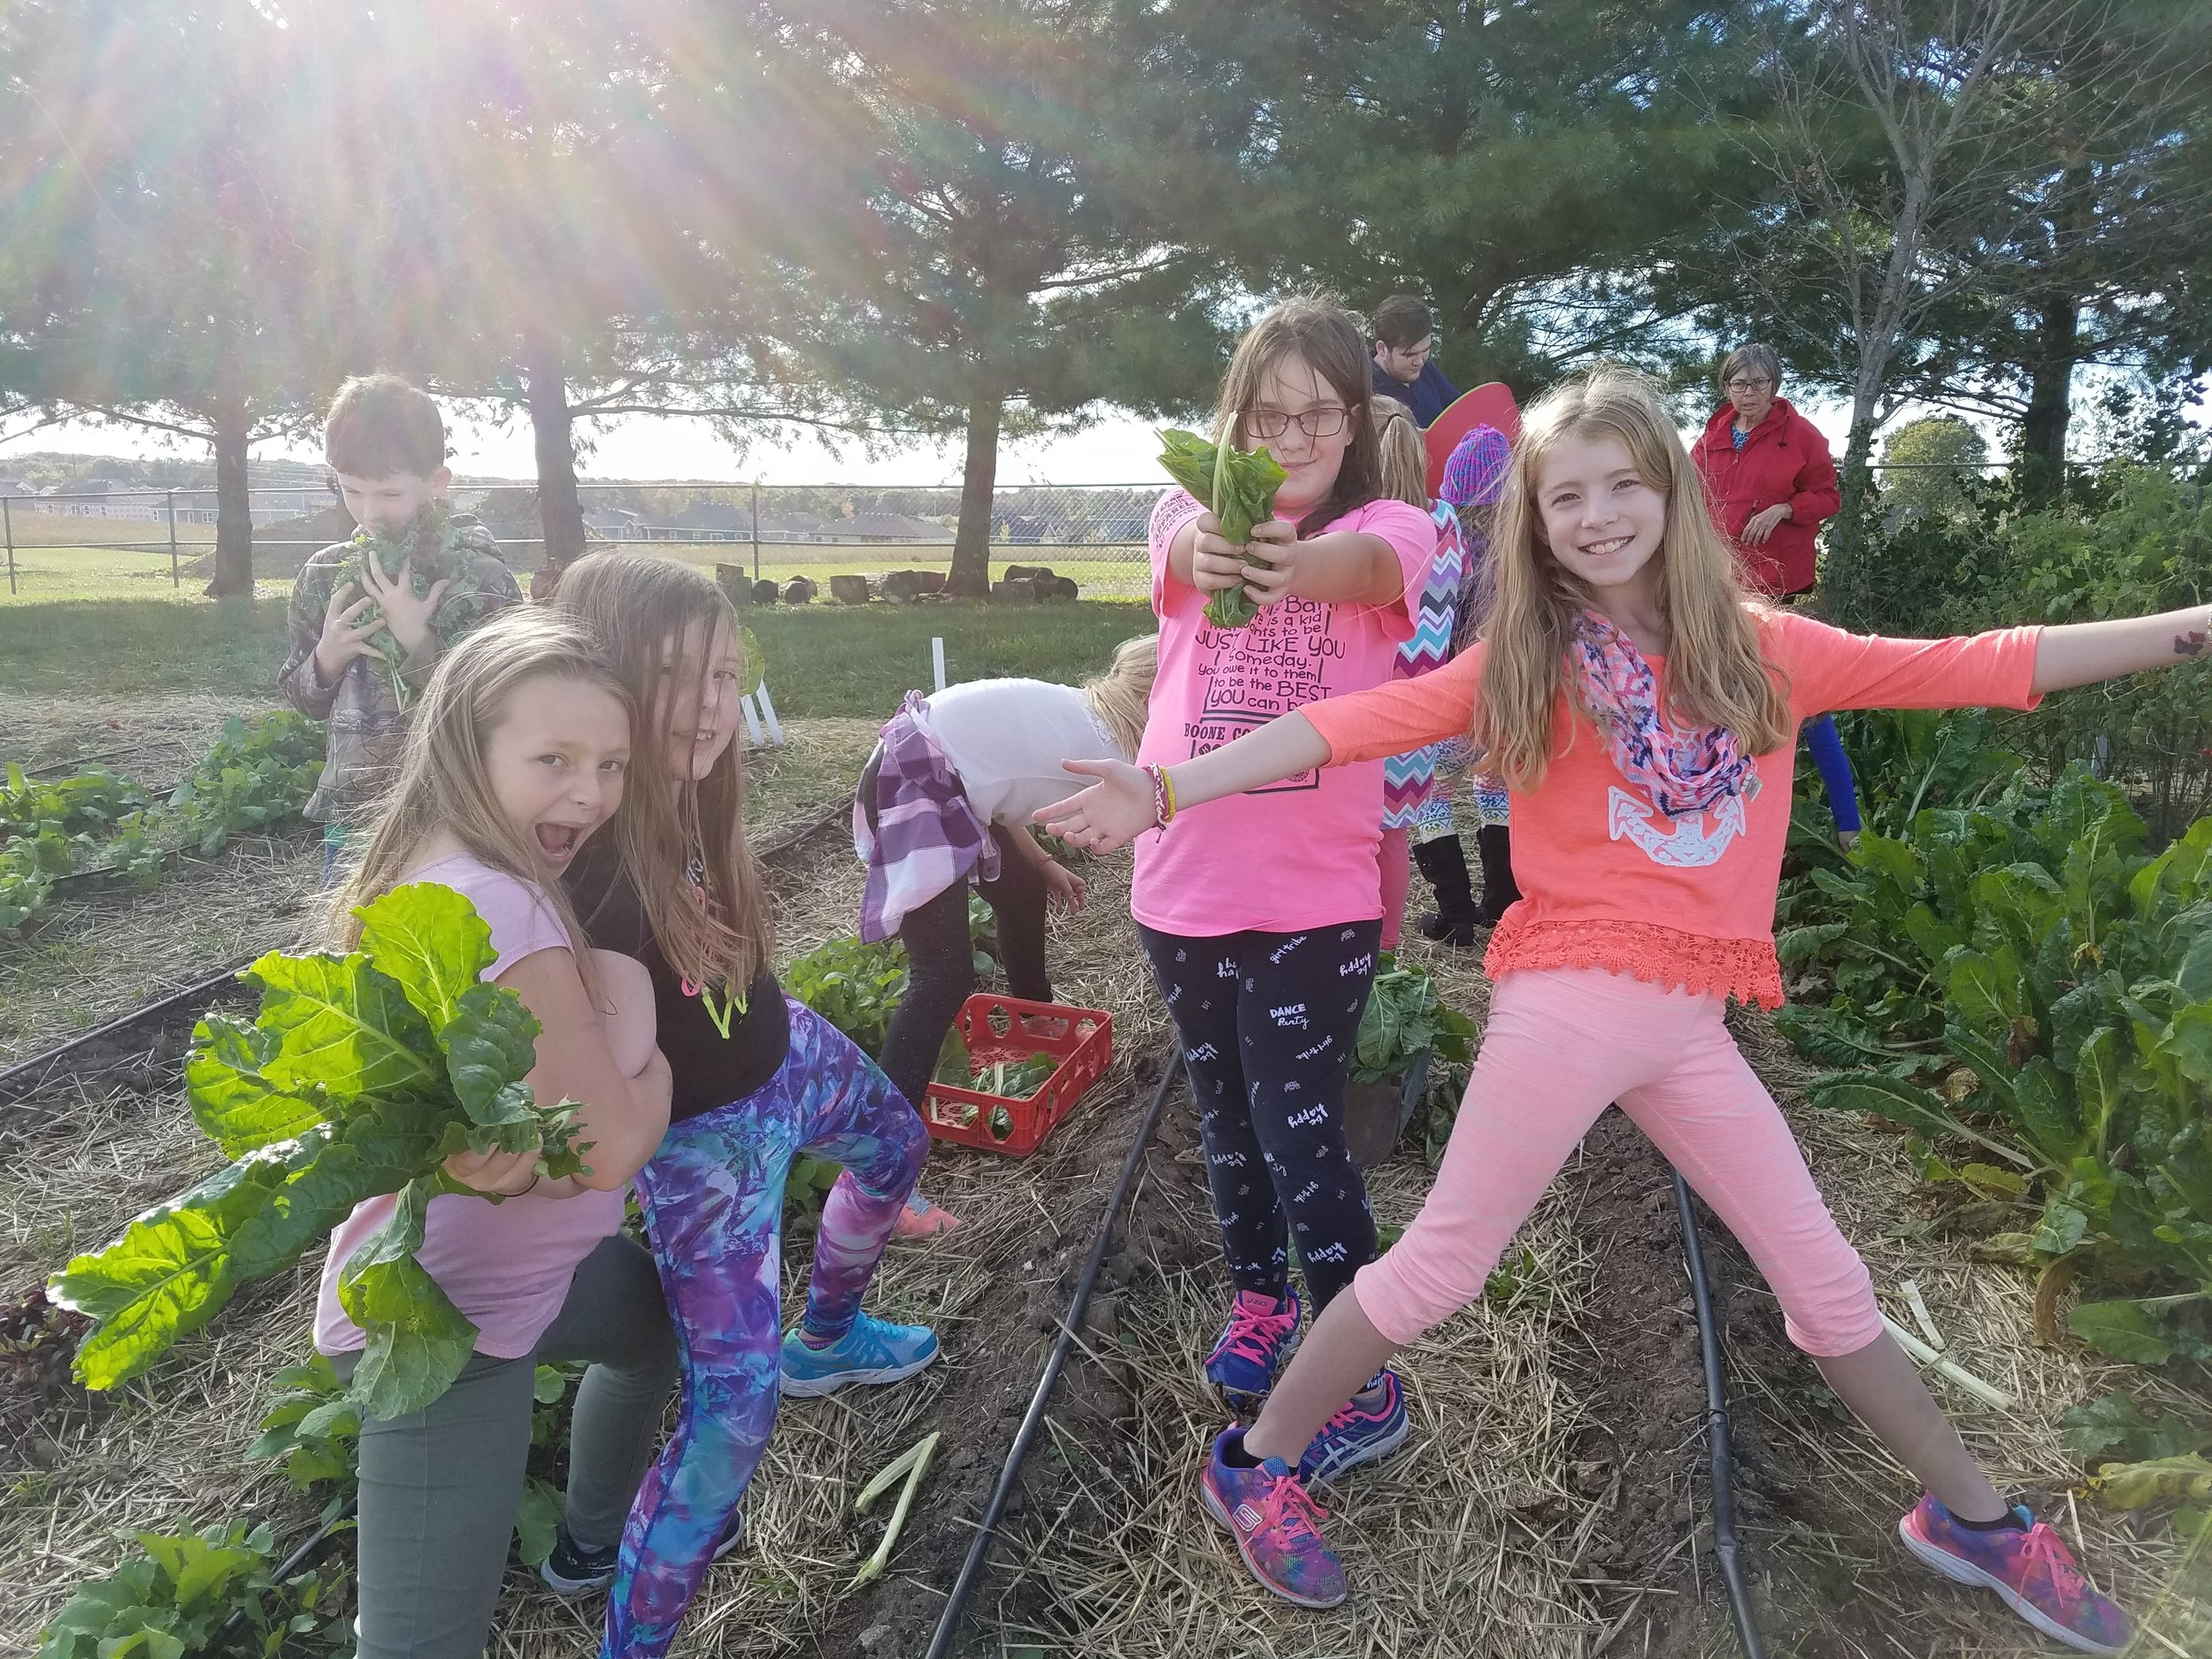 Garden Clubbers harvesting chard & other goodies from the 'field garden'.